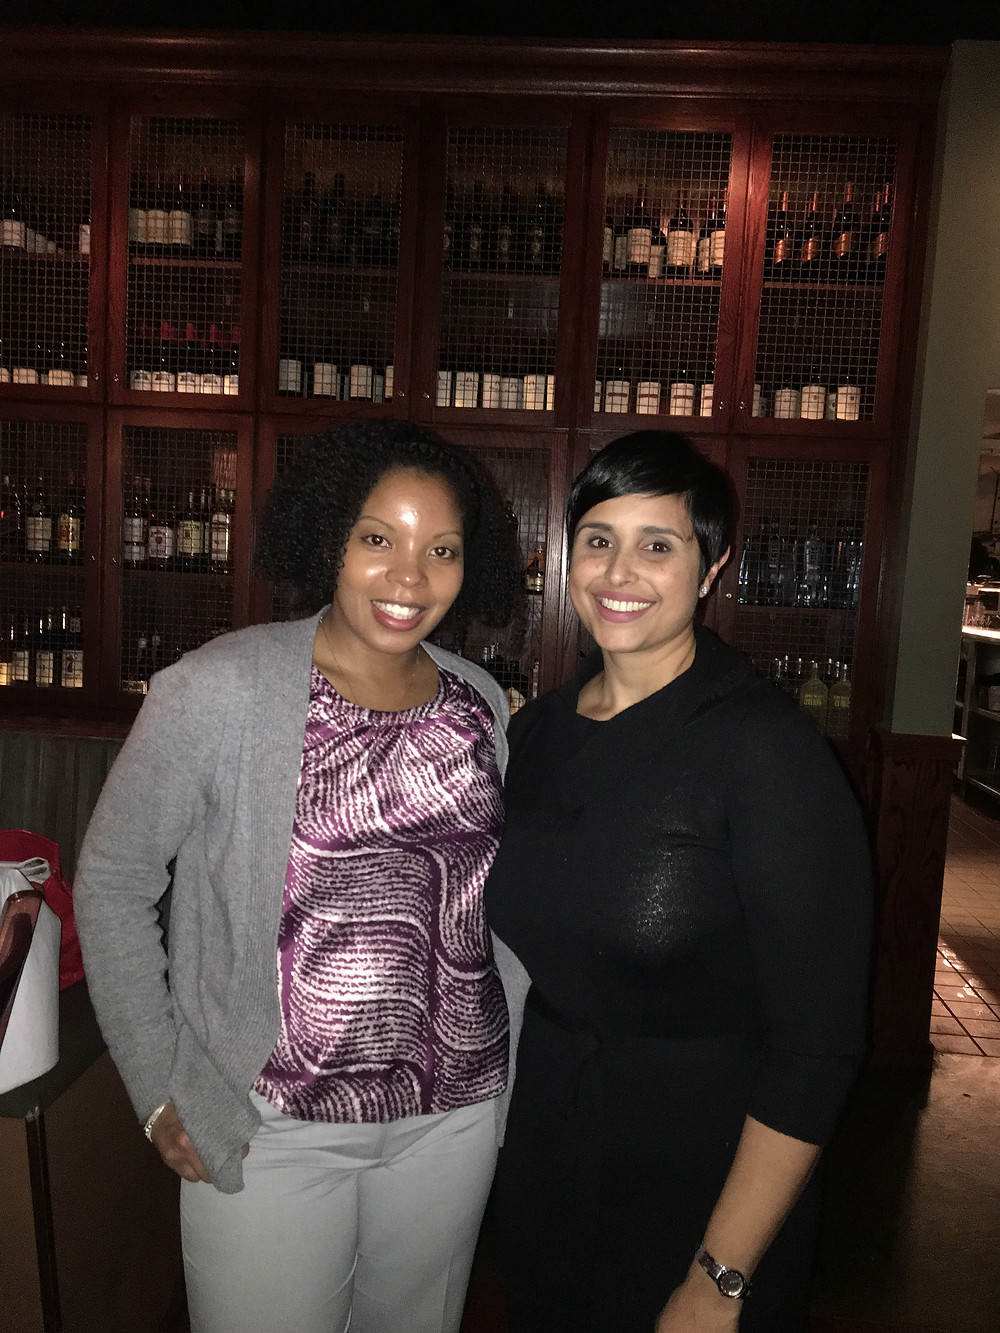 Christine Jean Louis (L), Asst Attorney General at the CT Office of the Attorney General & Shannon White (R) HR/Recruiting Consultant of Untapped Potential